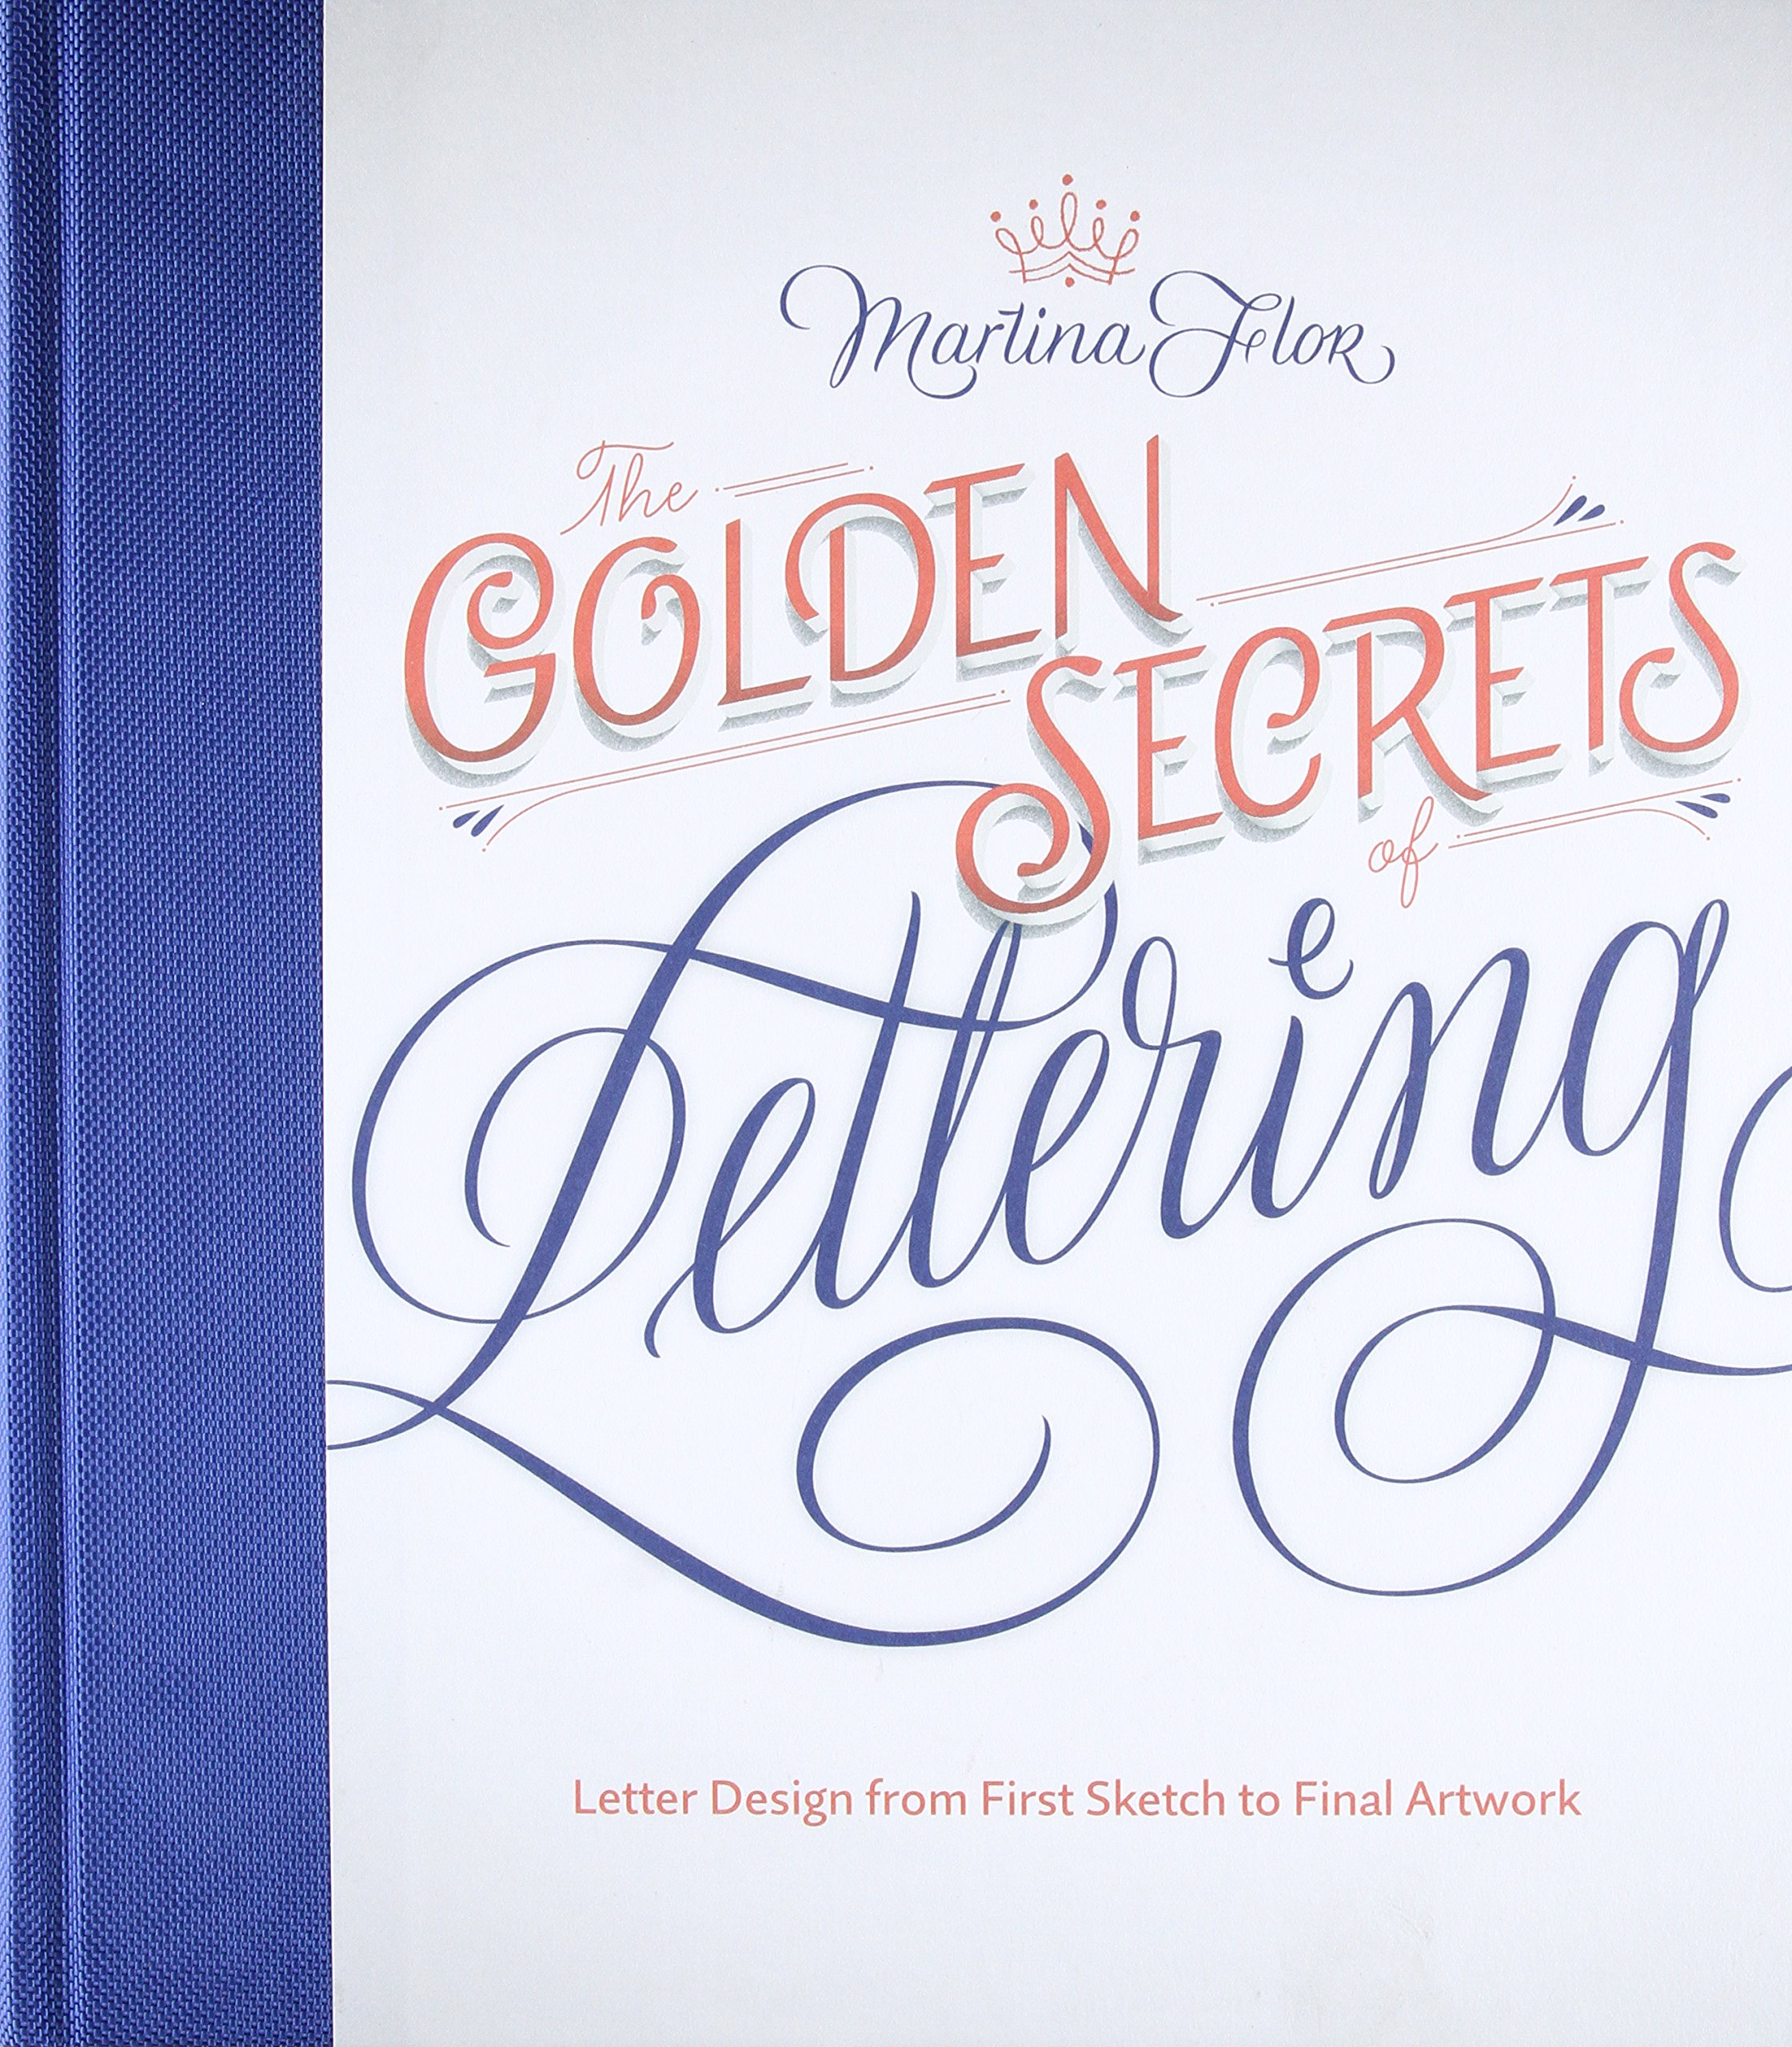 The Golden Secrets Of Lettering Letter Design From First Sketch To Final Artwork Martina Flor 9781616895730 Amazon Books